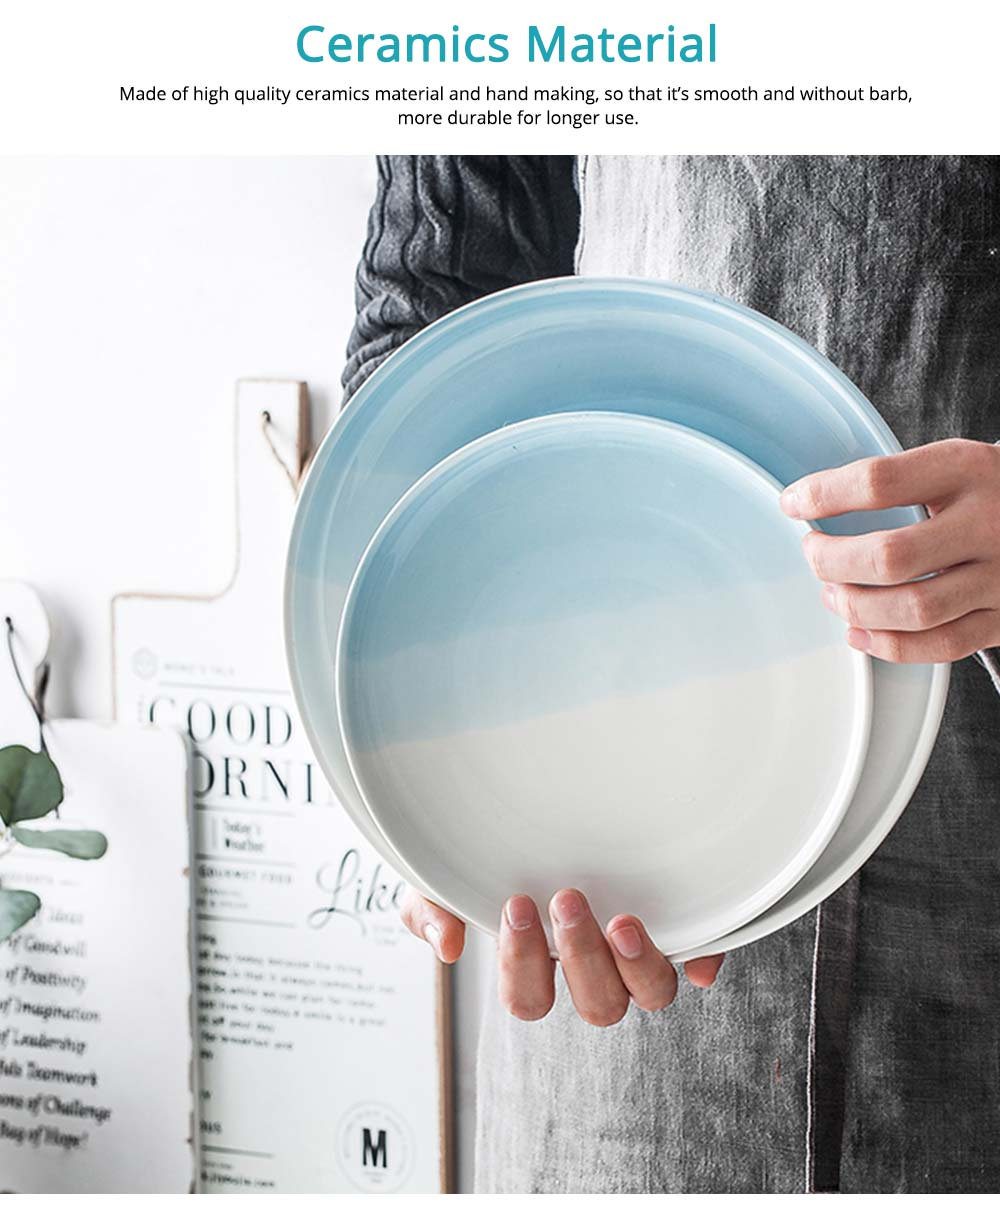 Fashionable Ceramics Plates for Dinner, Different Sizes 2